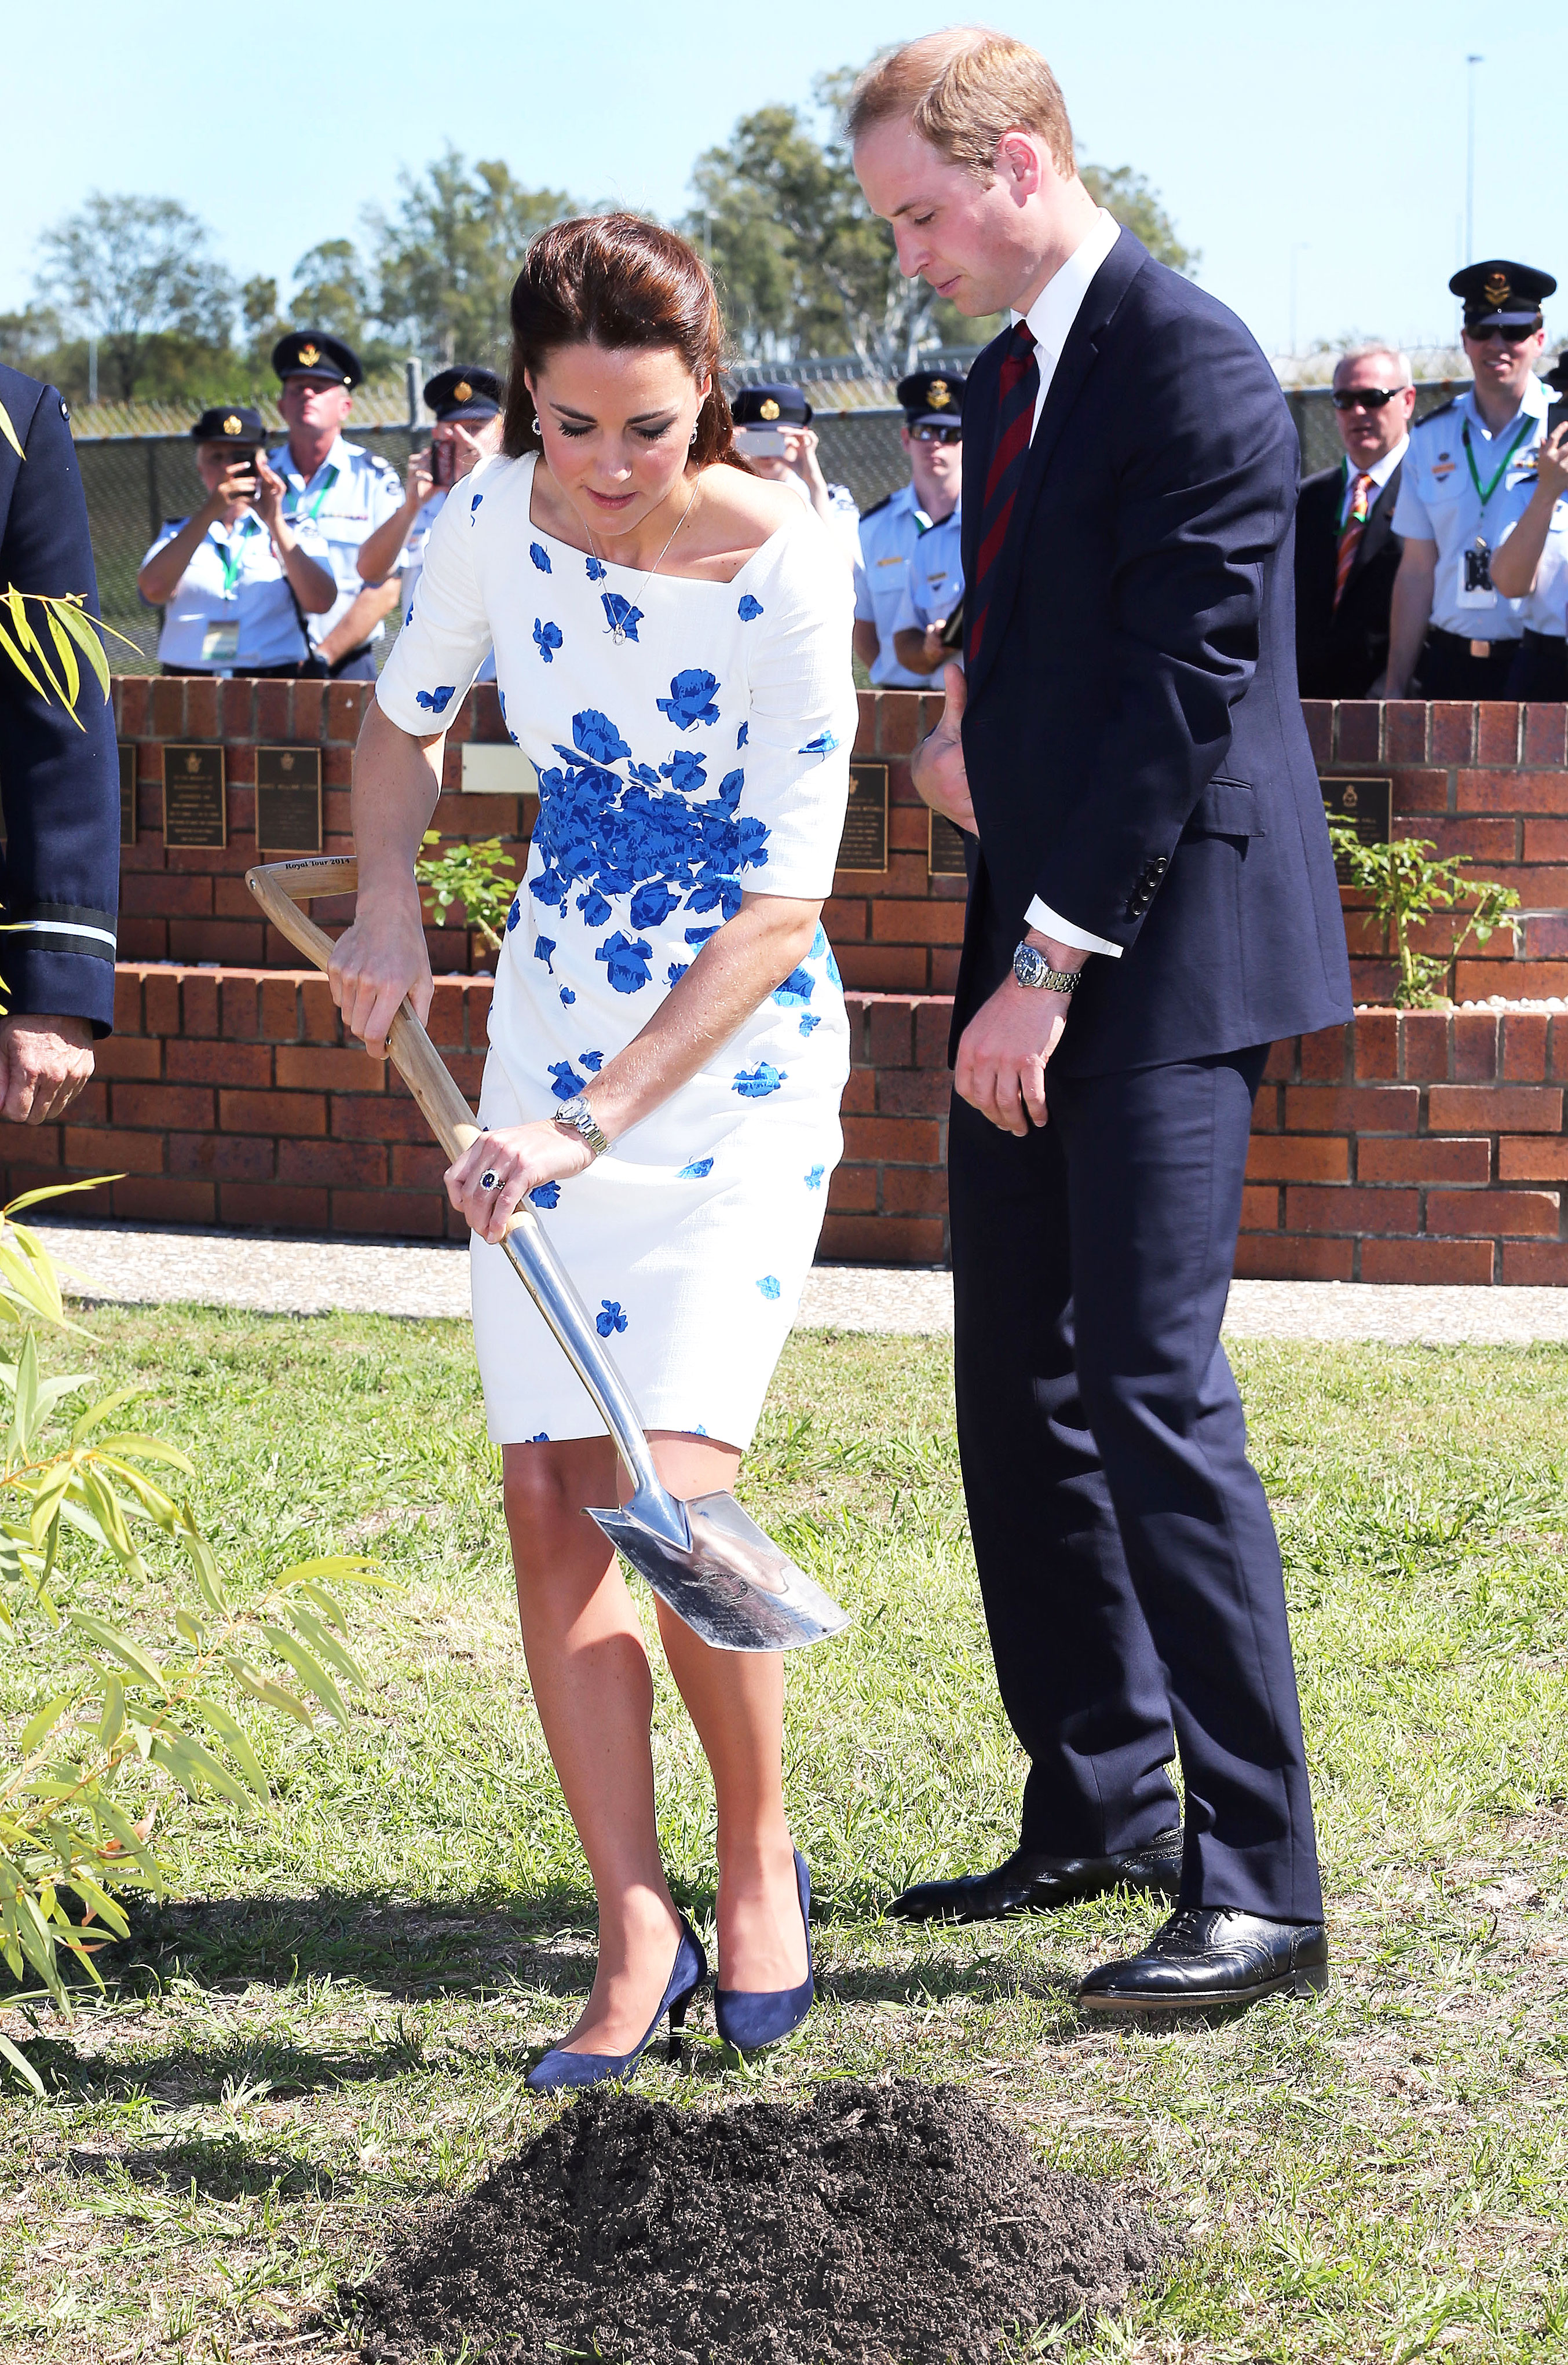 97e51ef07c46 Duchess Kate and Prince William plant a tree as they visit RAAF Amberley on  April 19, 2014, in Brisbane, Australia. Pool/Samir Hussein/WireImage